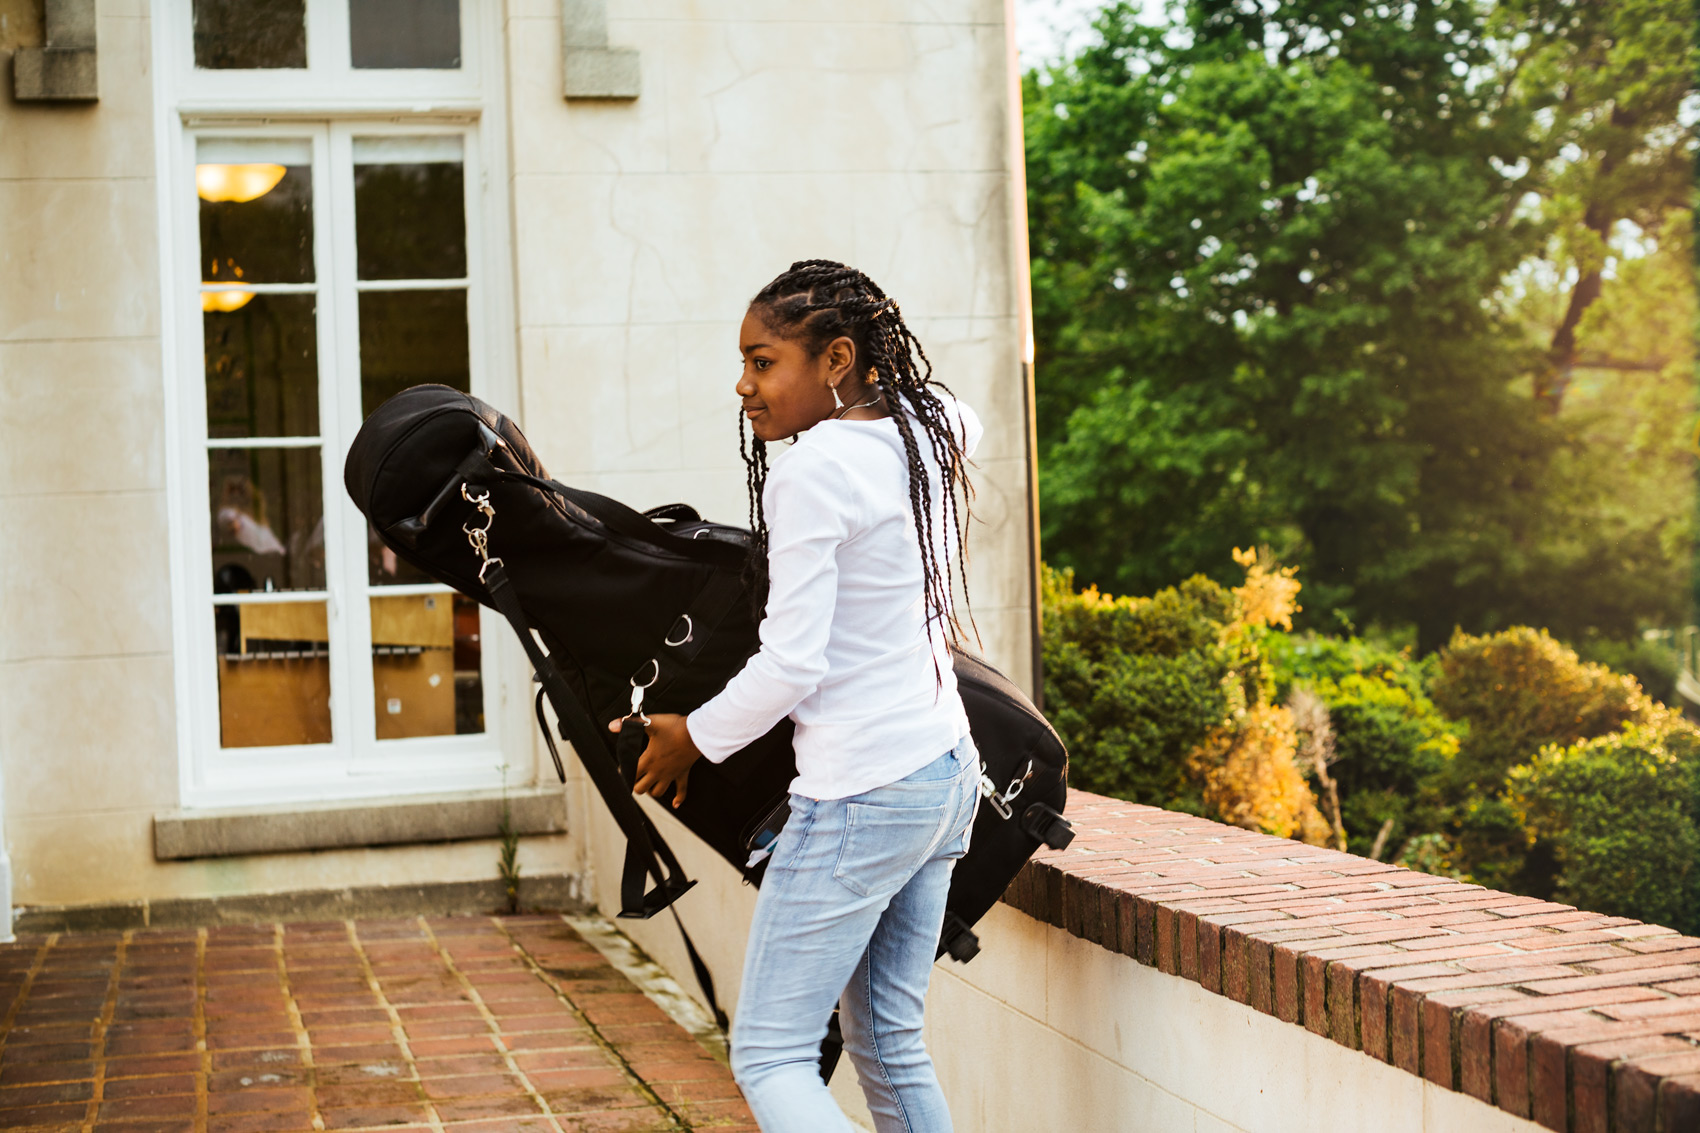 adolescent girl carrying cello case outside, washington dc commercial photography